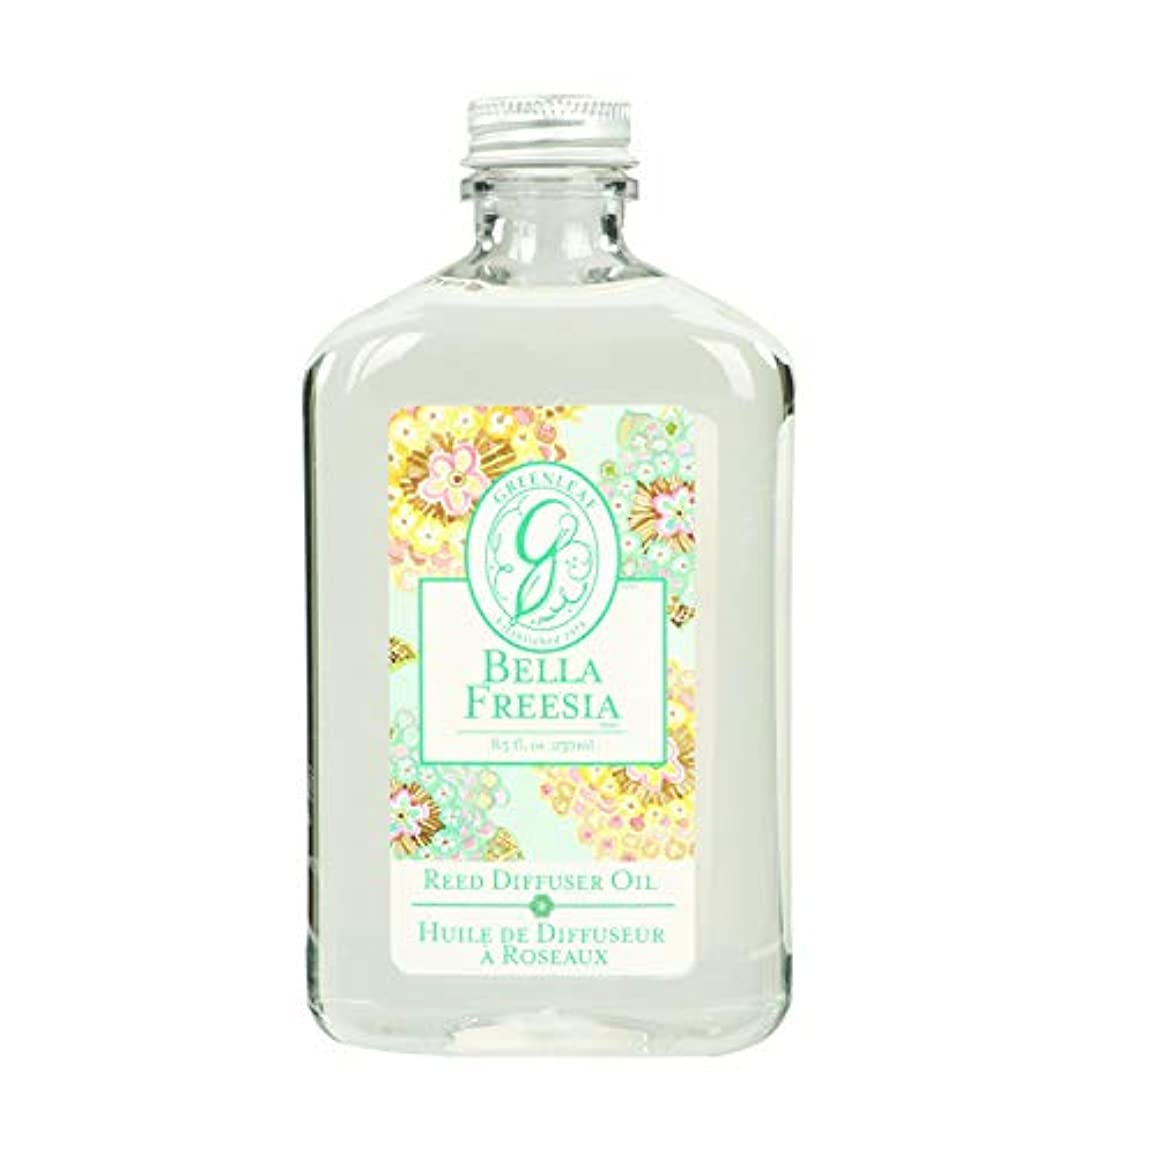 ポーク一時解雇する意志GREEN LEAF REED DIFFUSER OIL REFILL BELLA FREESIA